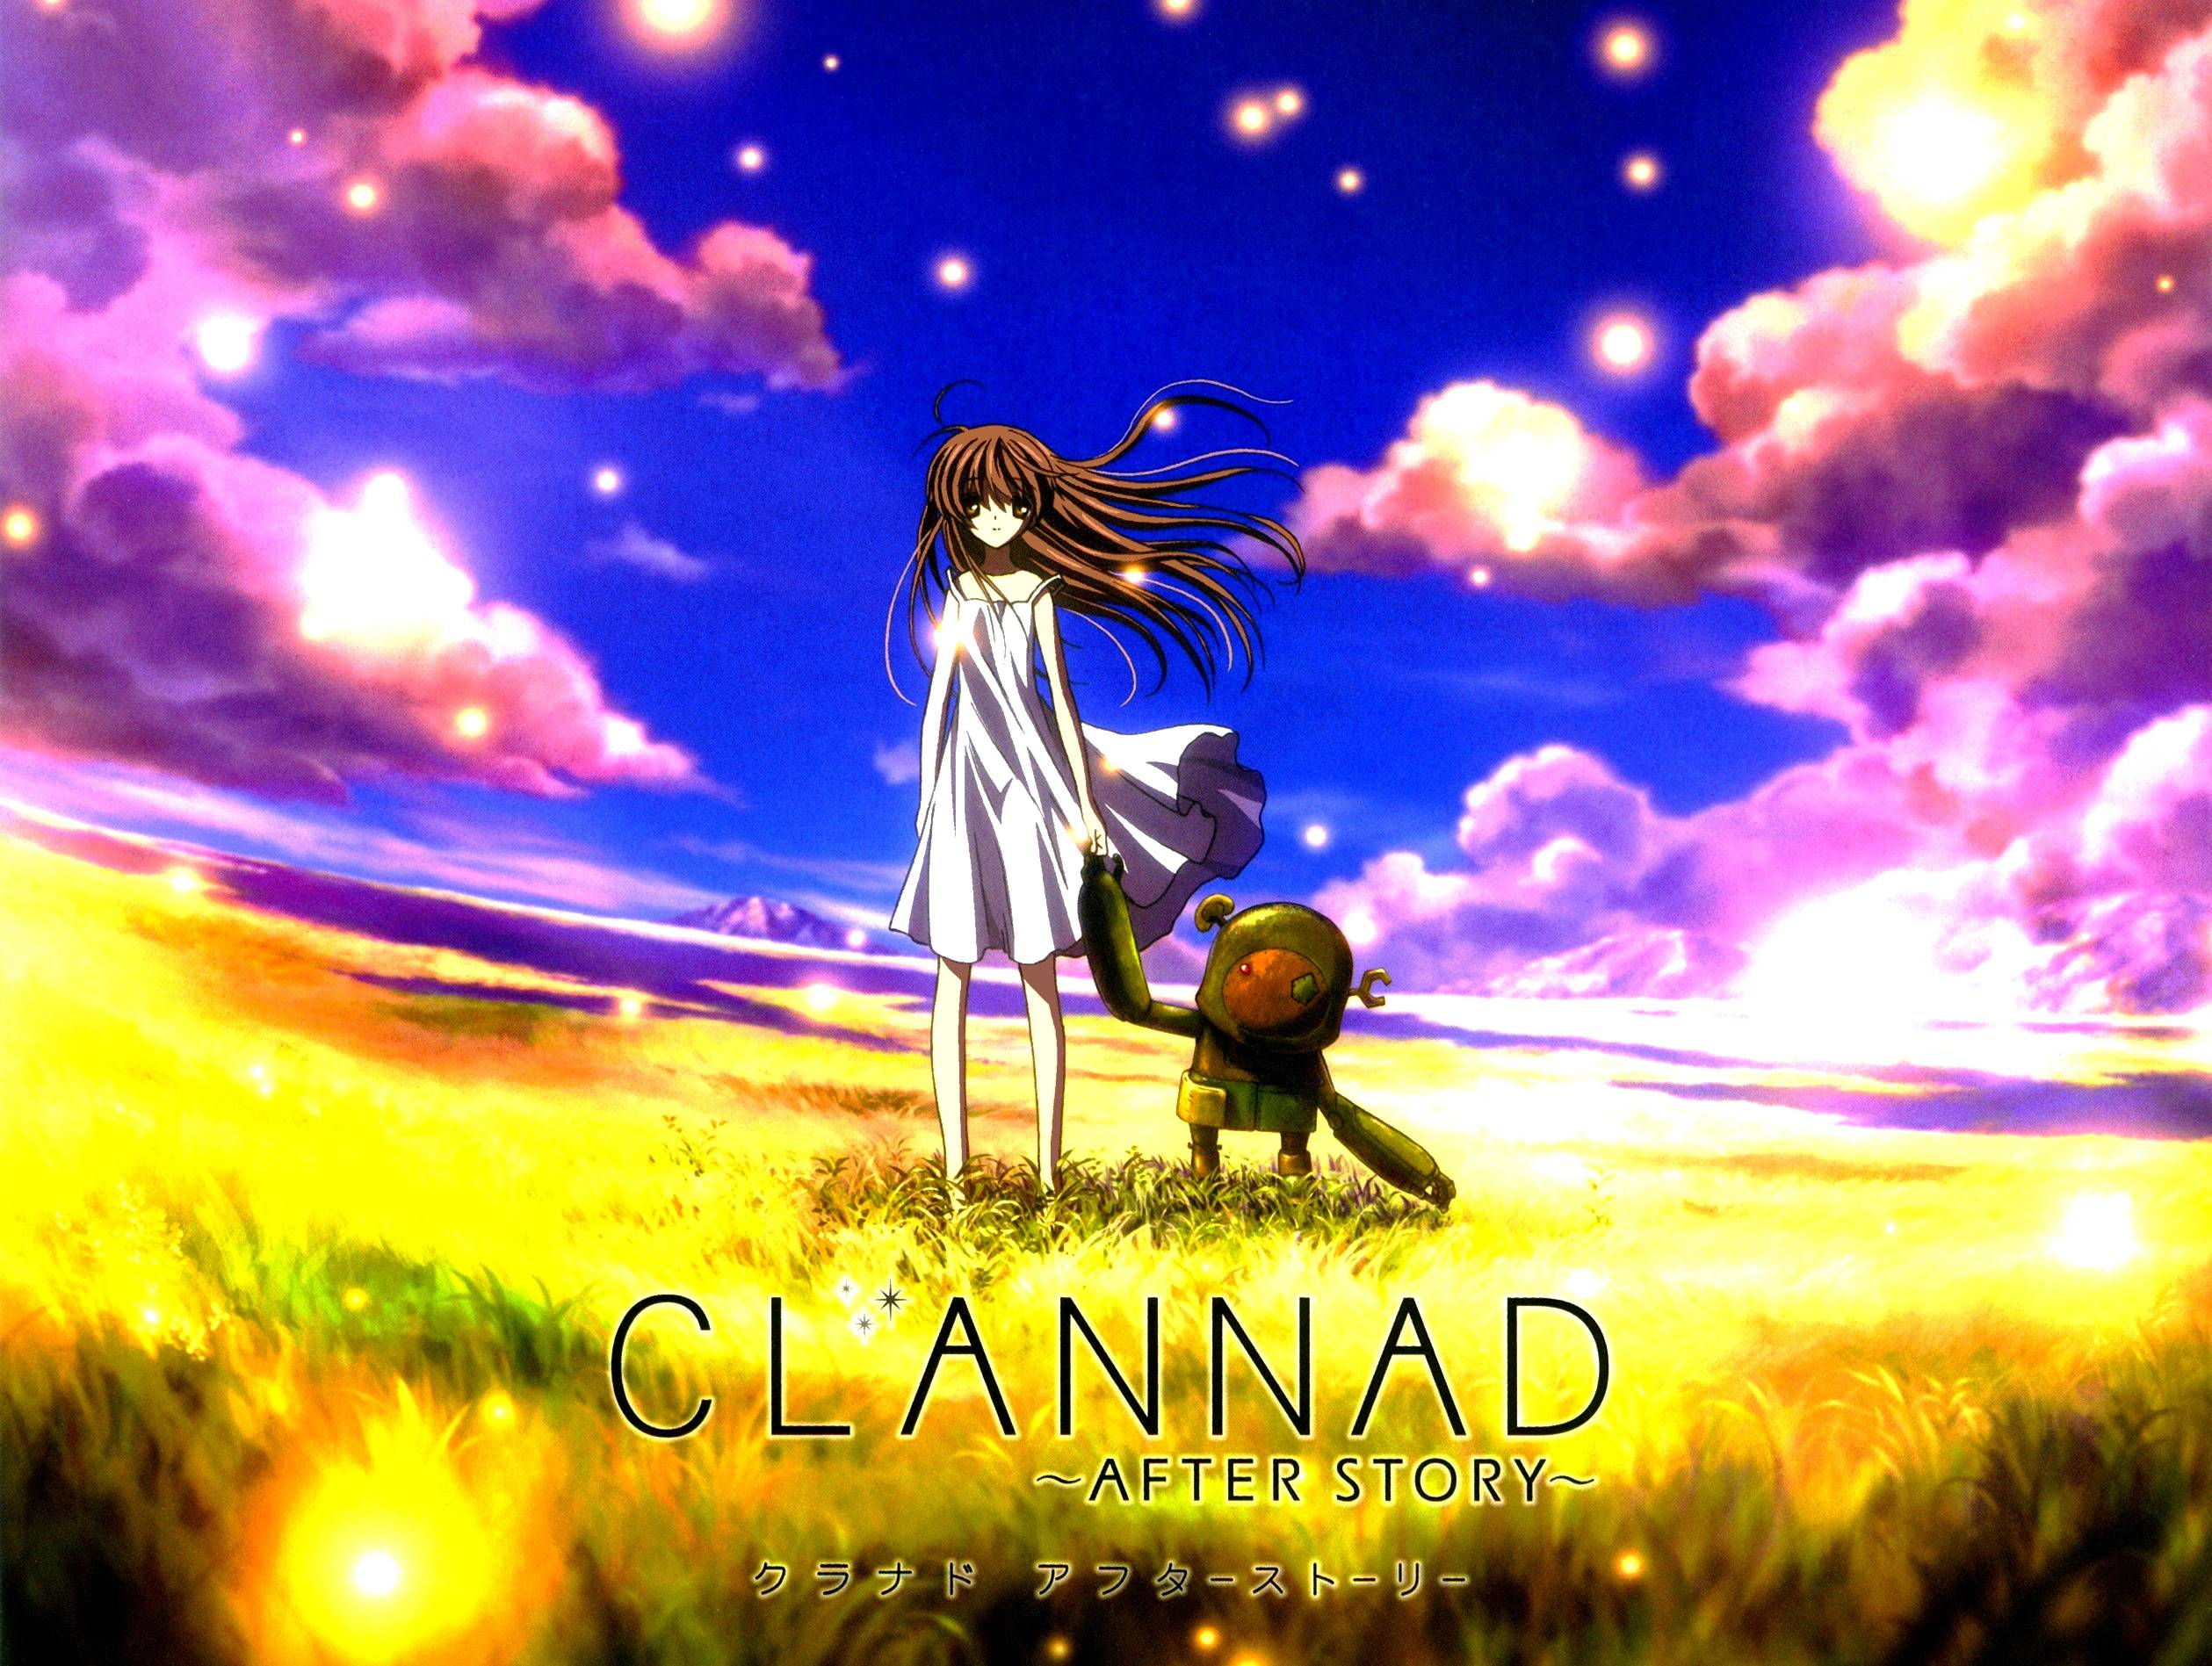 Clannad Wallpapers 2518x1897